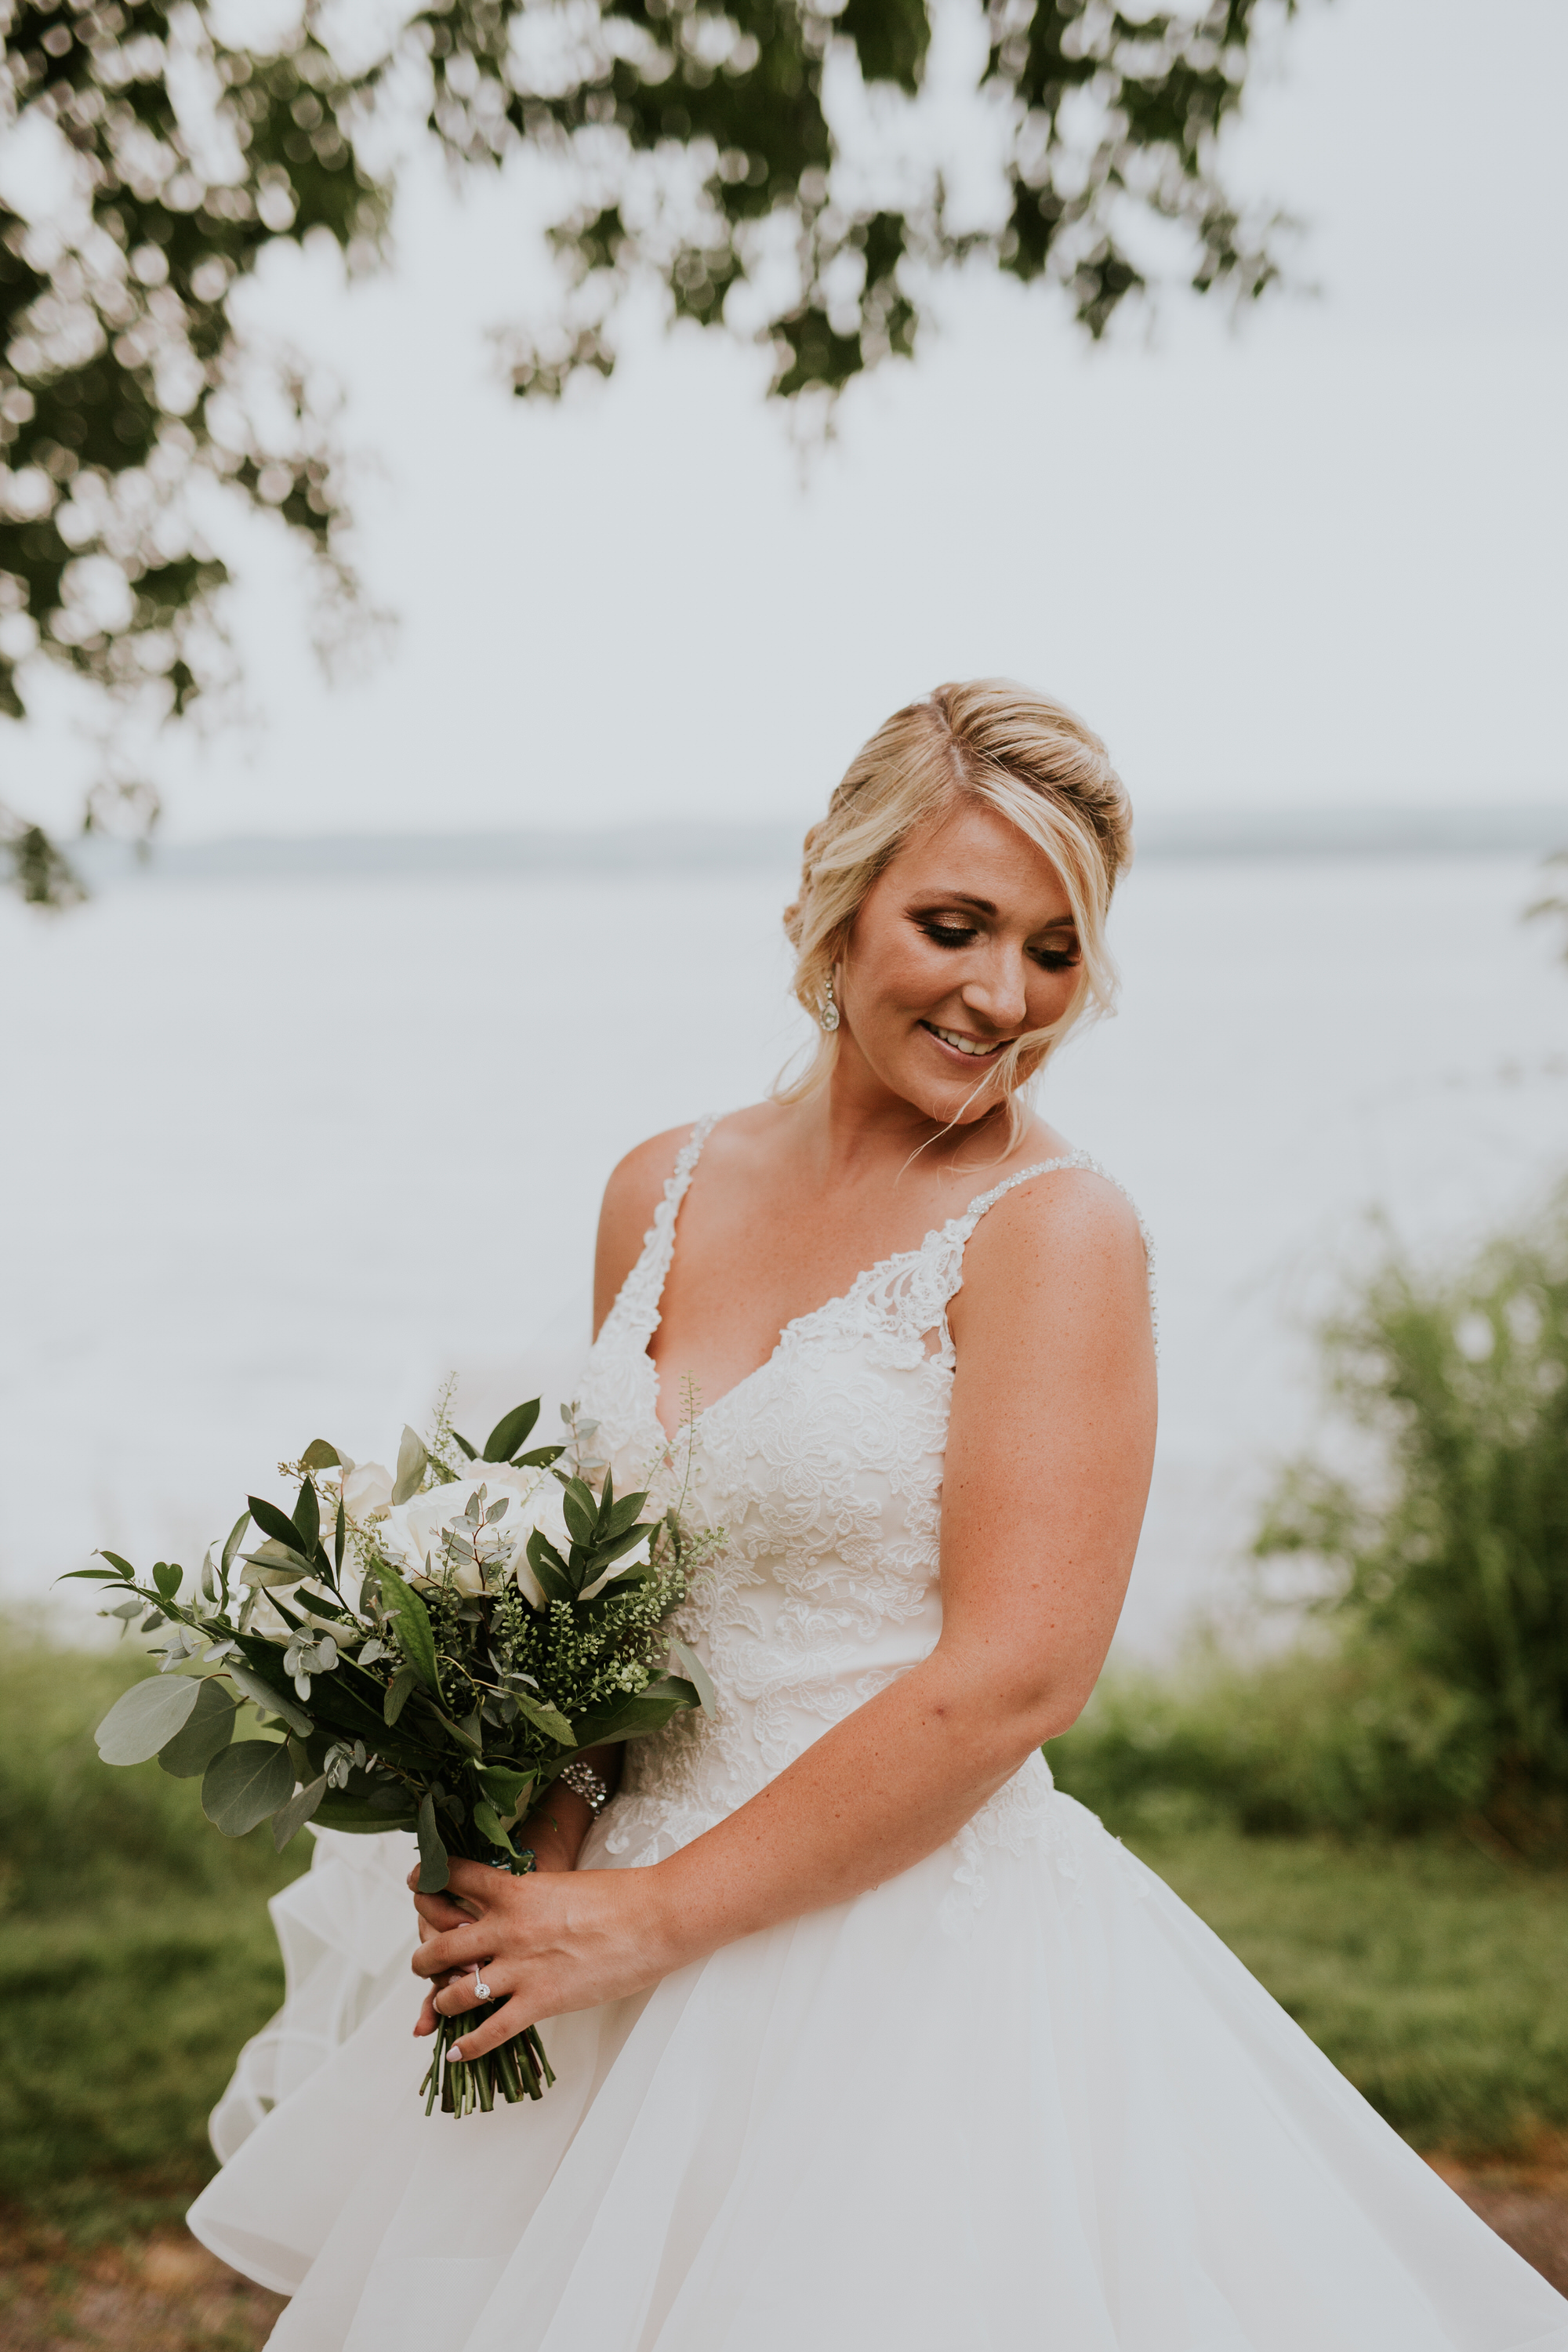 Elmhirst Resort Wedding - portrait of the bride